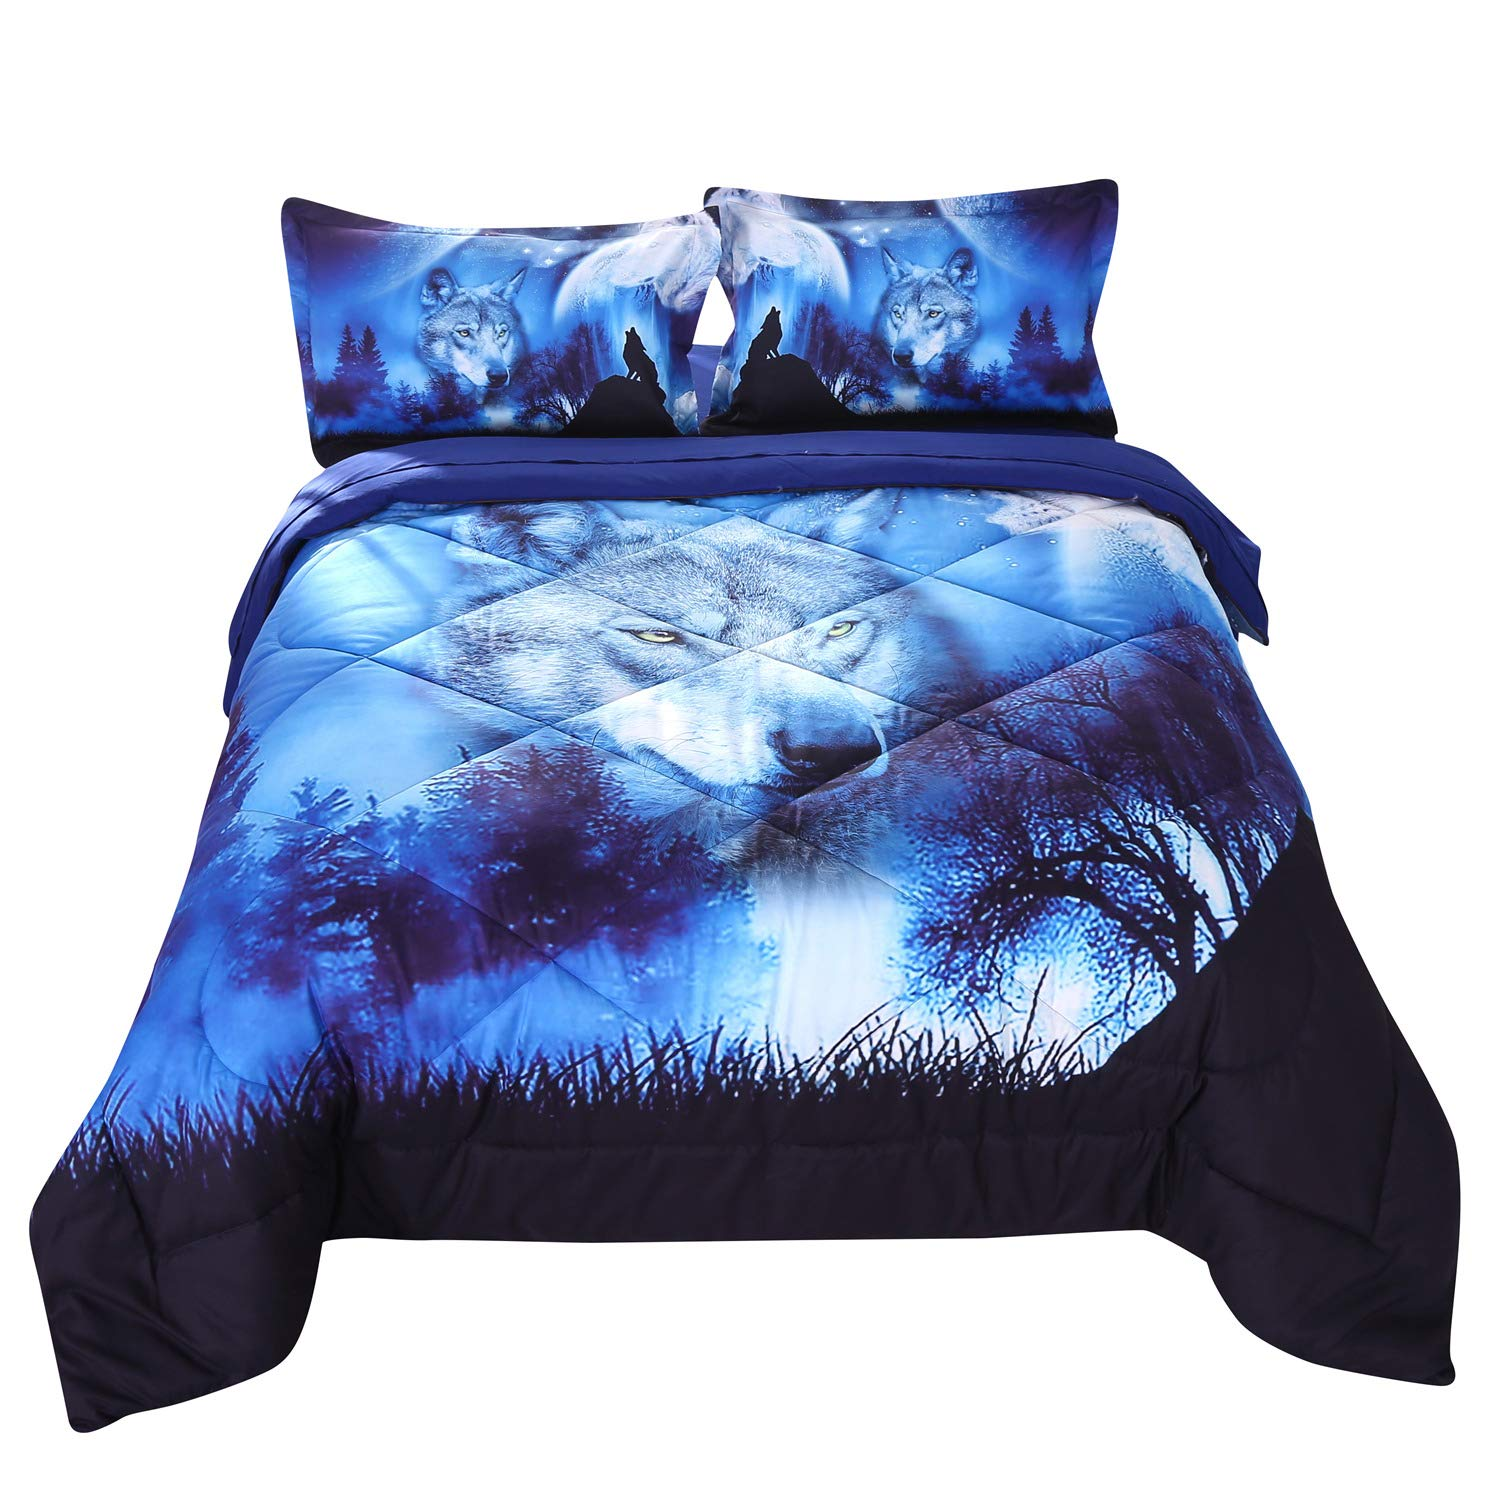 Wowelife Wolf Comforter Sets Twin 5 Piece Wolf Bedding Set Blue with Comforter, Flat Sheet, Fitted Sheet and 2 Pillow Cases for Kids(Twin-5 Piece)